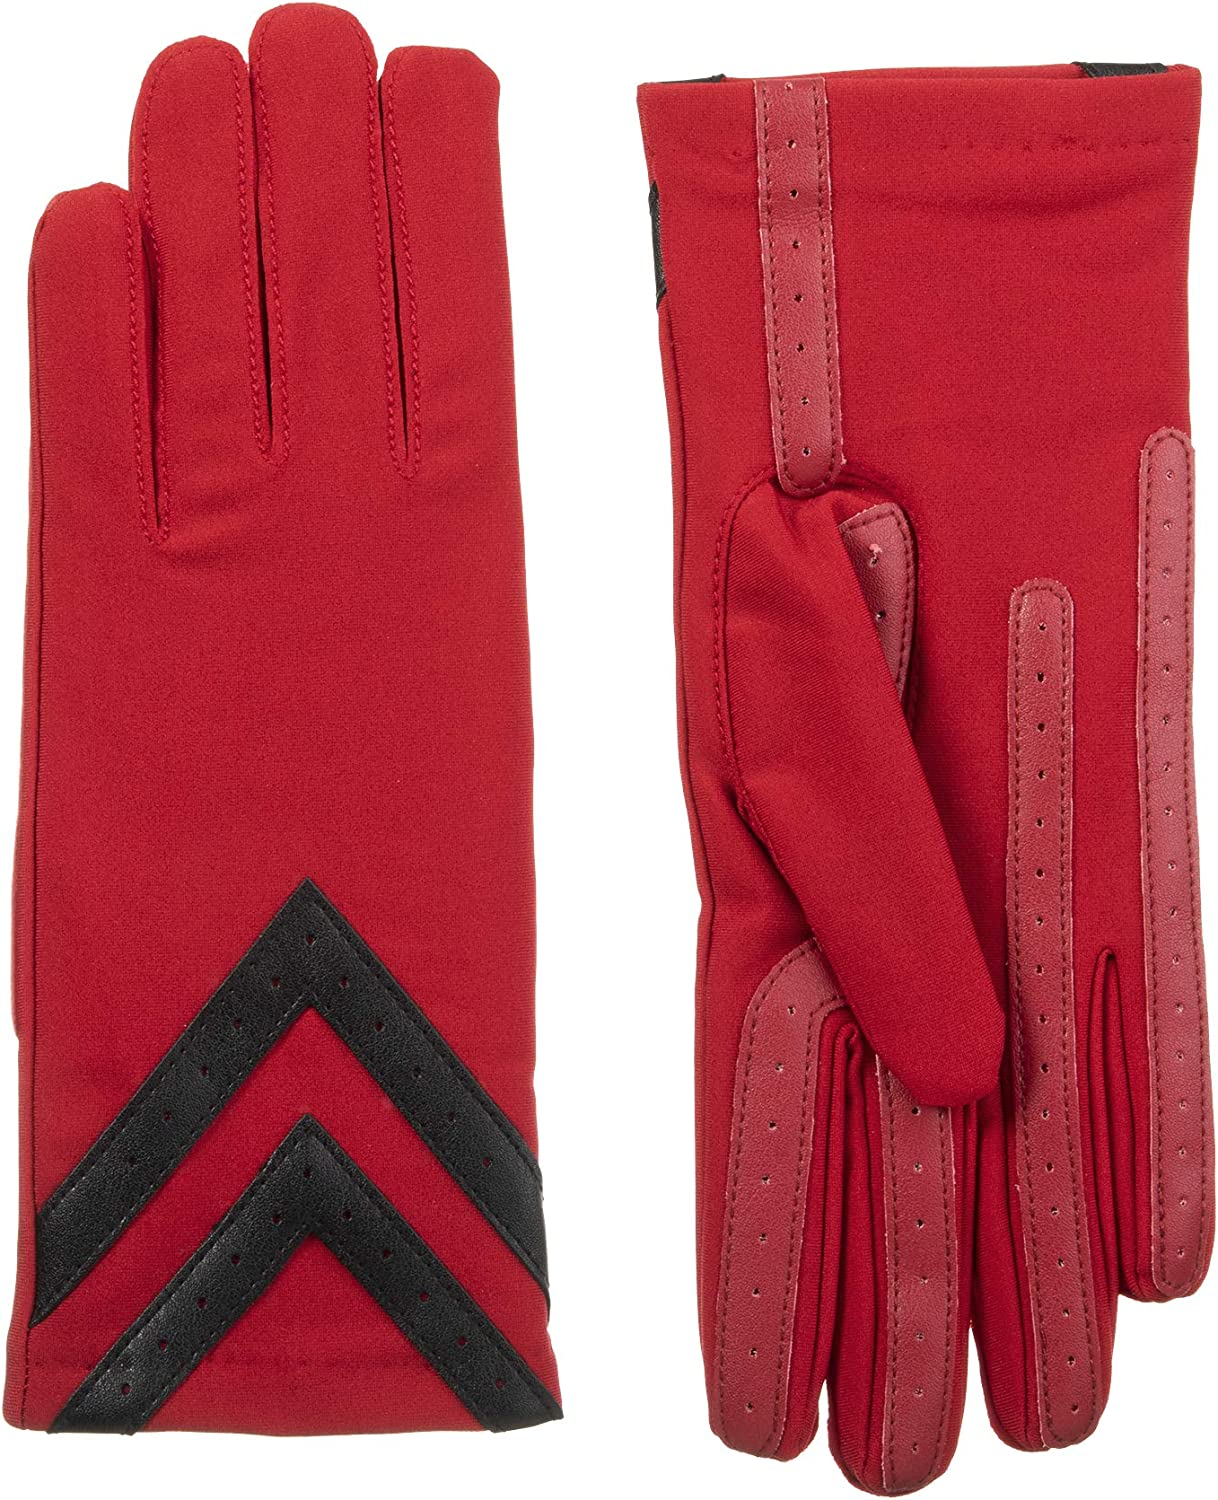 isotoner Women's Spandex Touchscreen Cold Weather Gloves with Warm Fleece Lining and Chevron Details, smartDRI Red, Large/X-Large